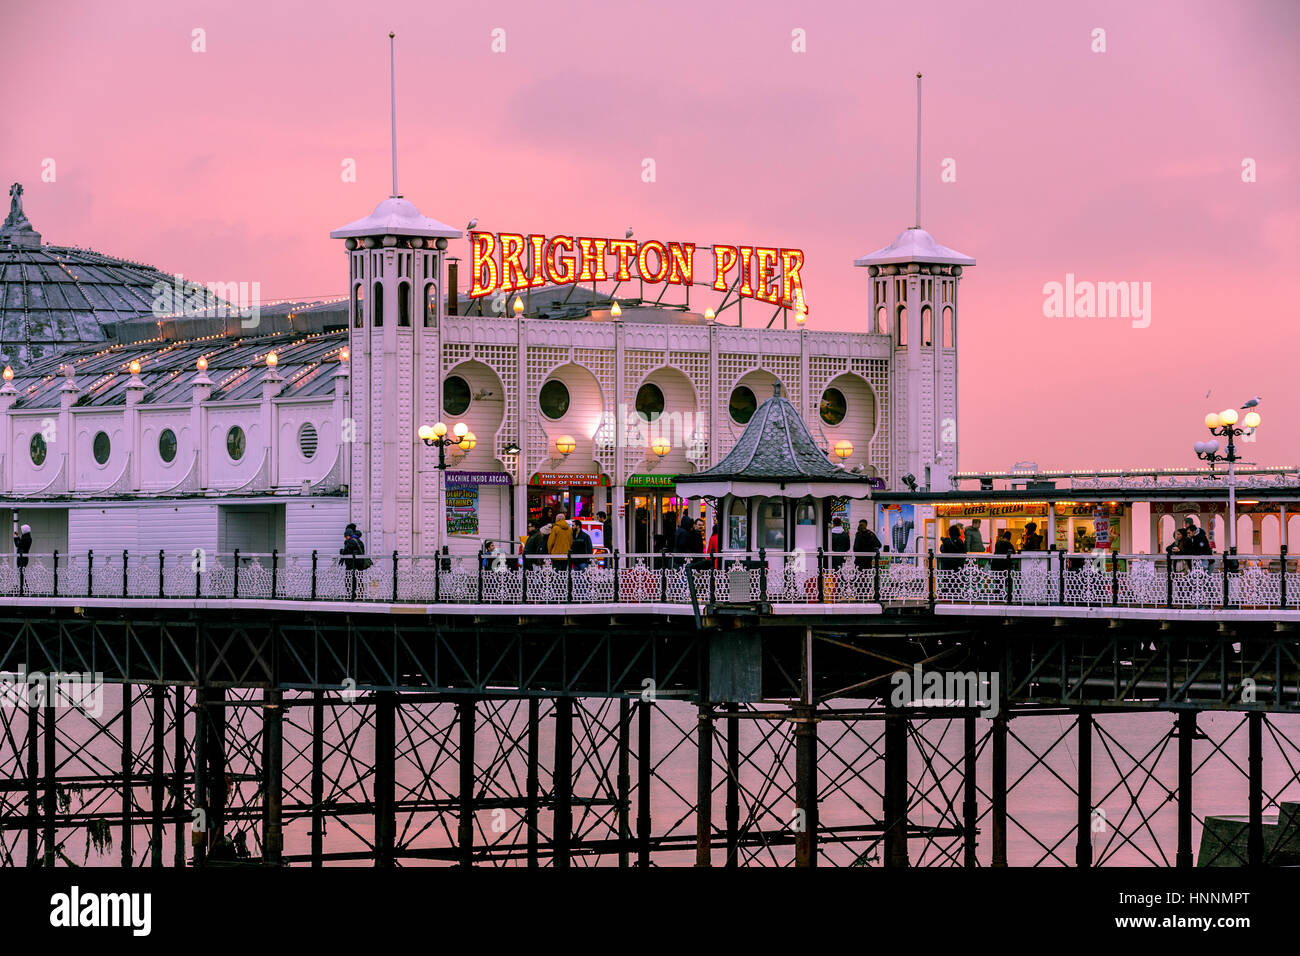 Winter-Twilight am Pier von Brighton, Brighton UK Stockbild